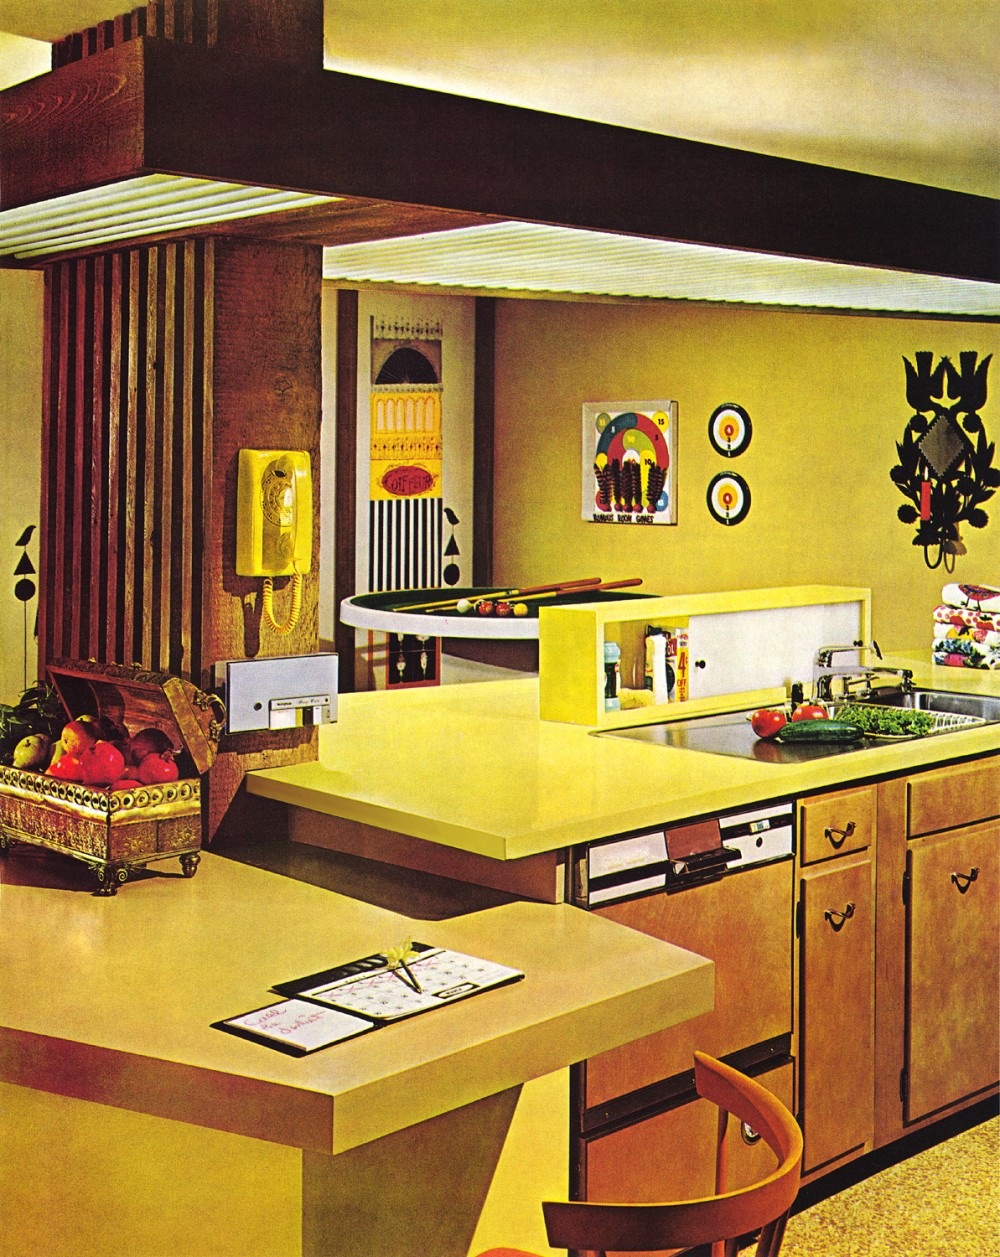 Interior five common 1970s decor elements ultra swank for Kitchen design 70s